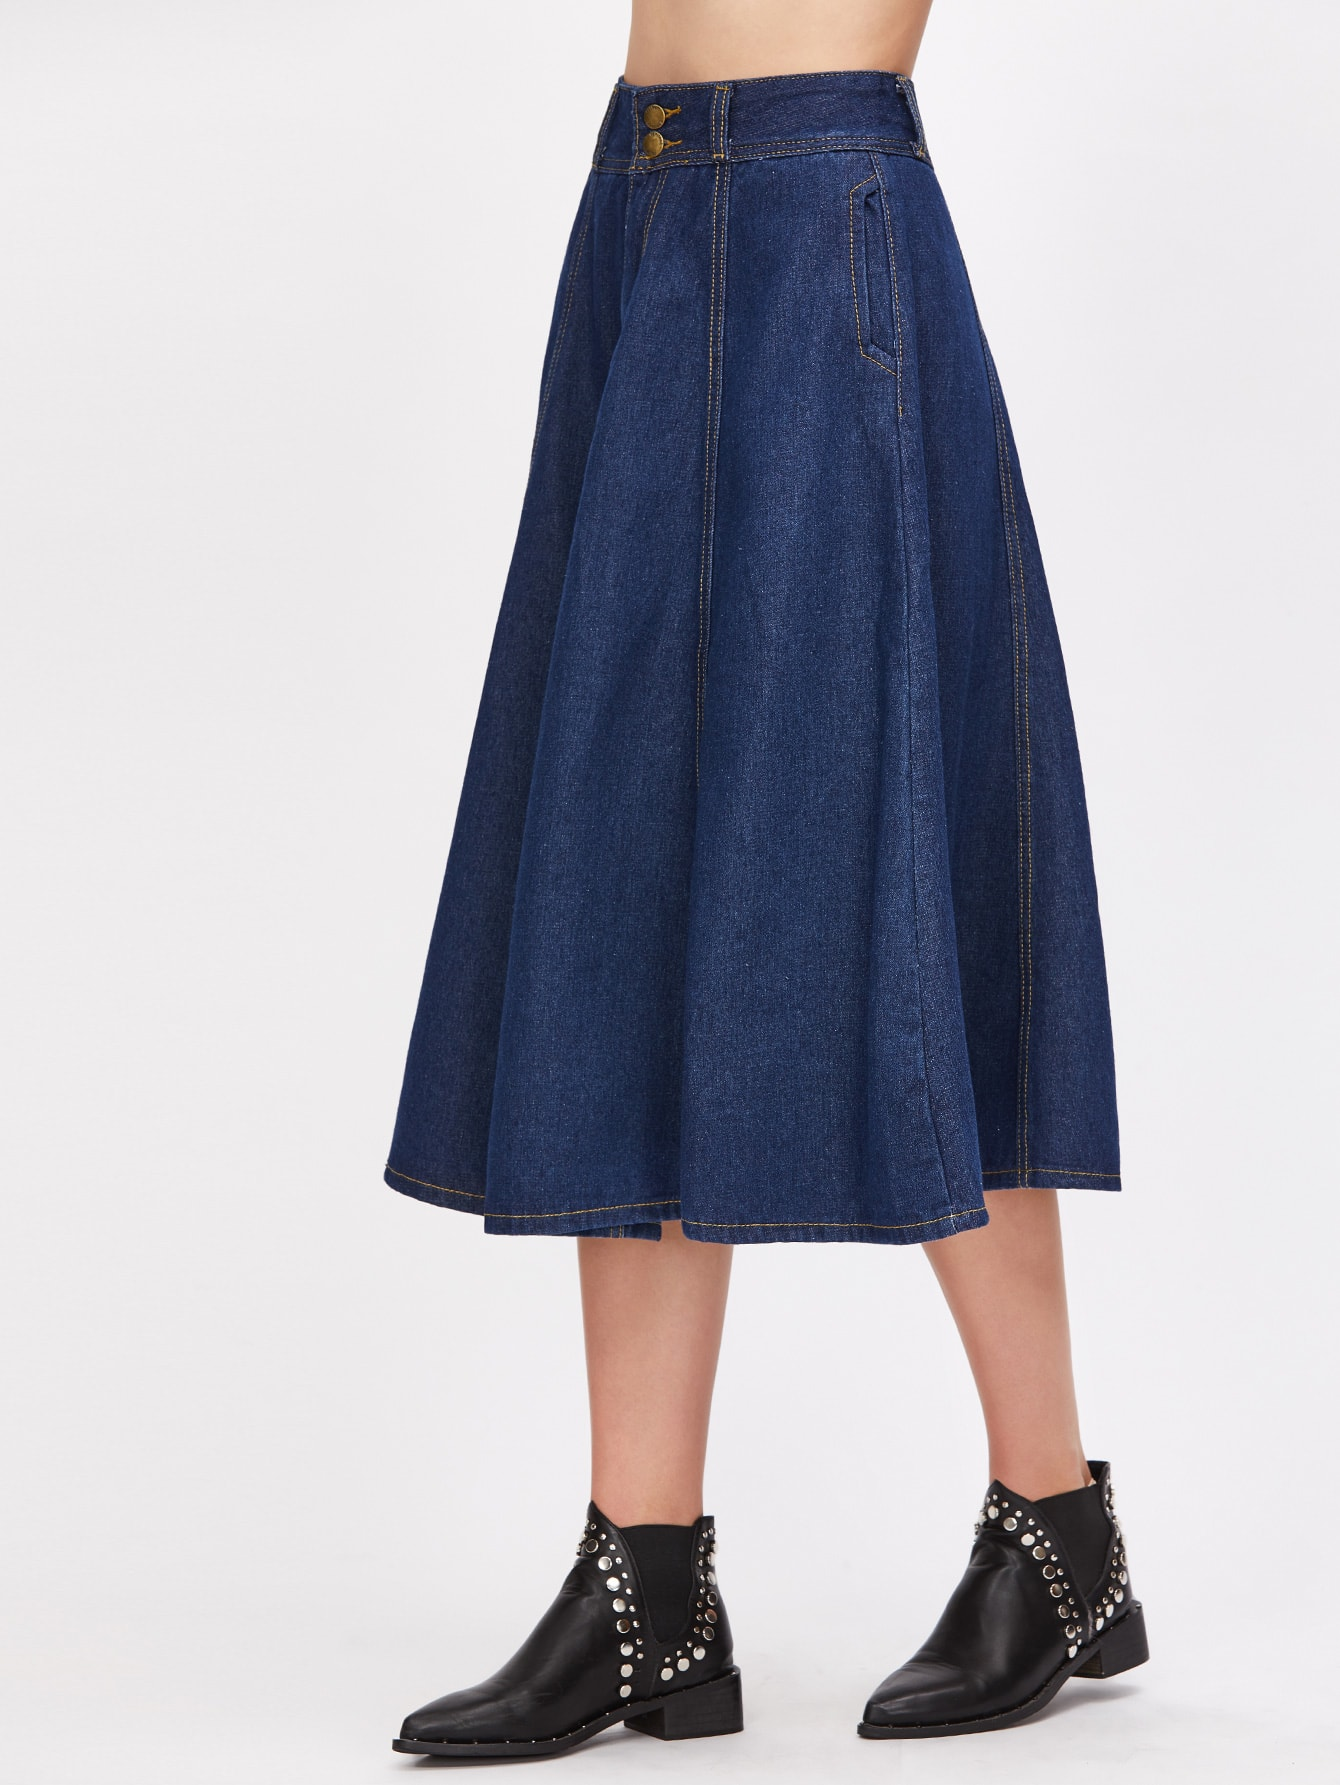 Dark Blue Denim A-Line SkirtDark Blue Denim A-Line Skirt<br><br>color: Blue<br>size: L,M,S,XL